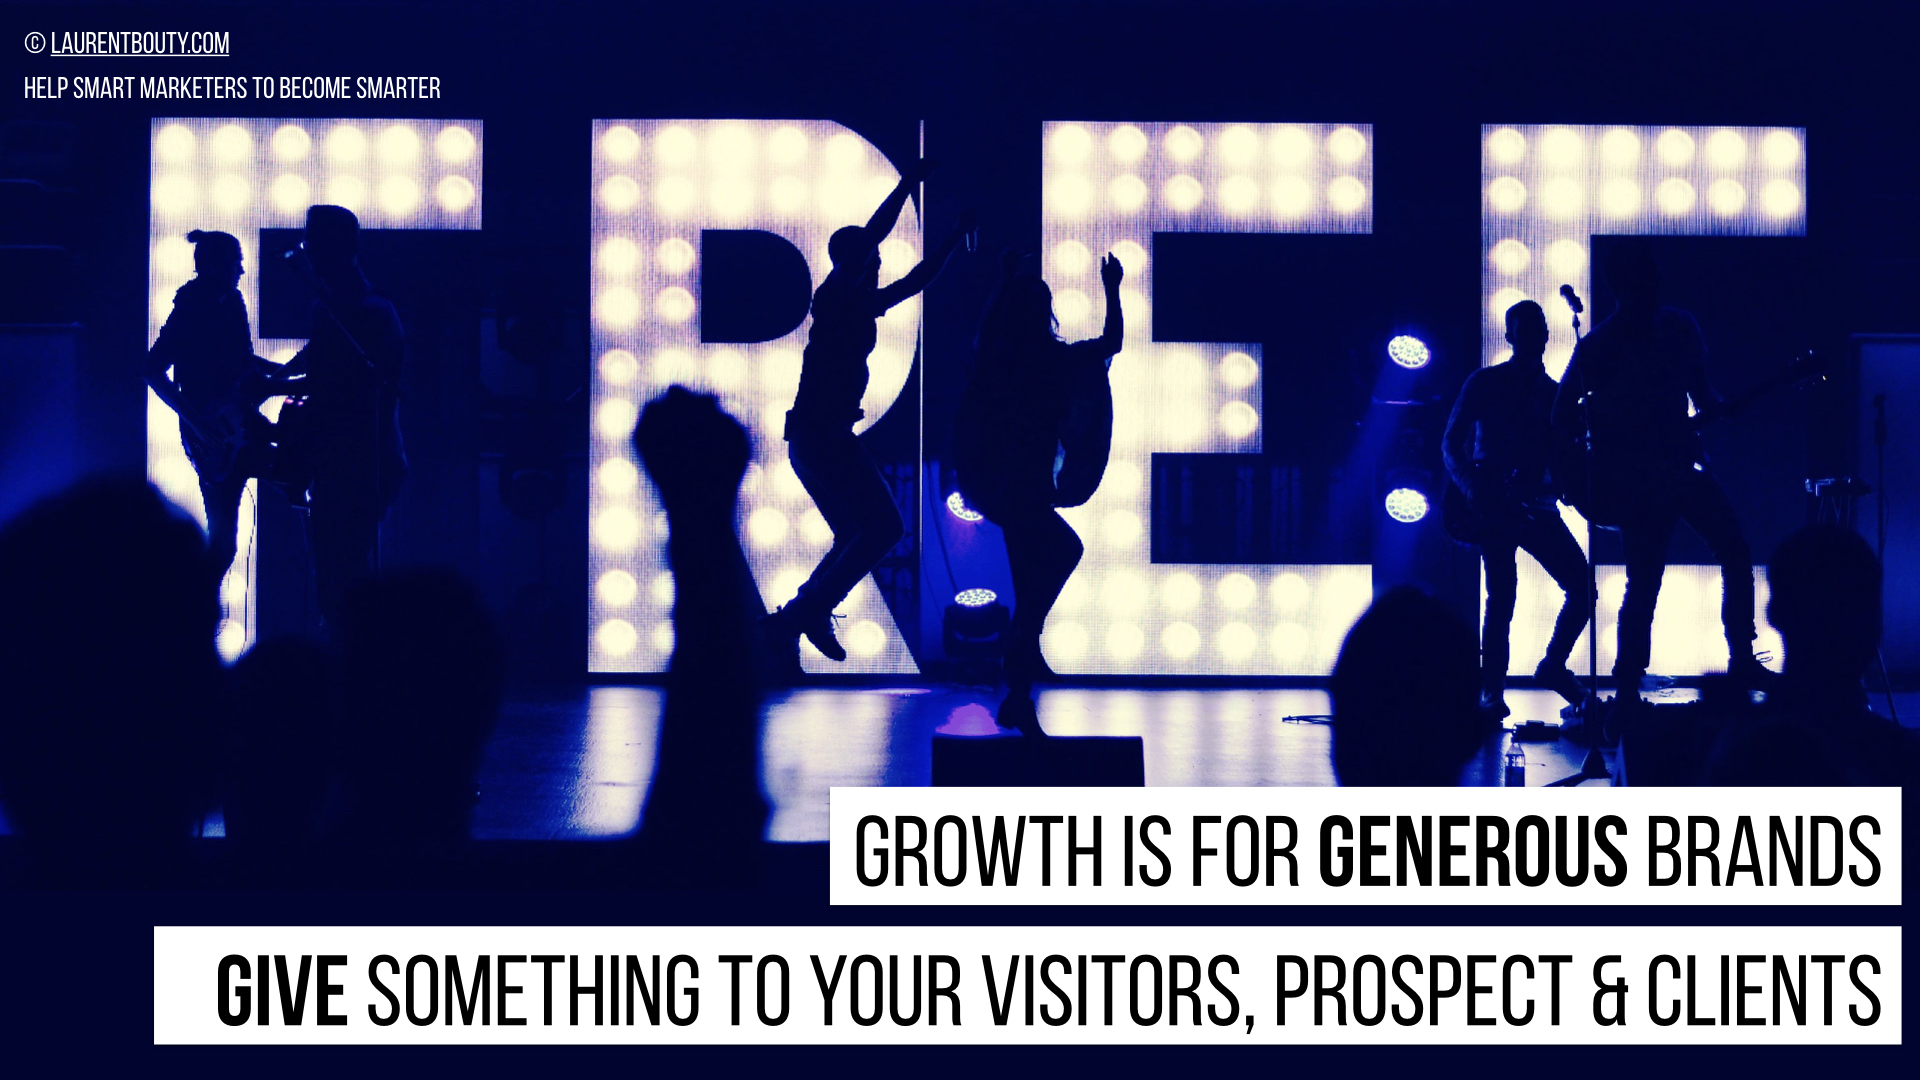 Laurent Bouty - Growth is For Generous Brands.jpeg